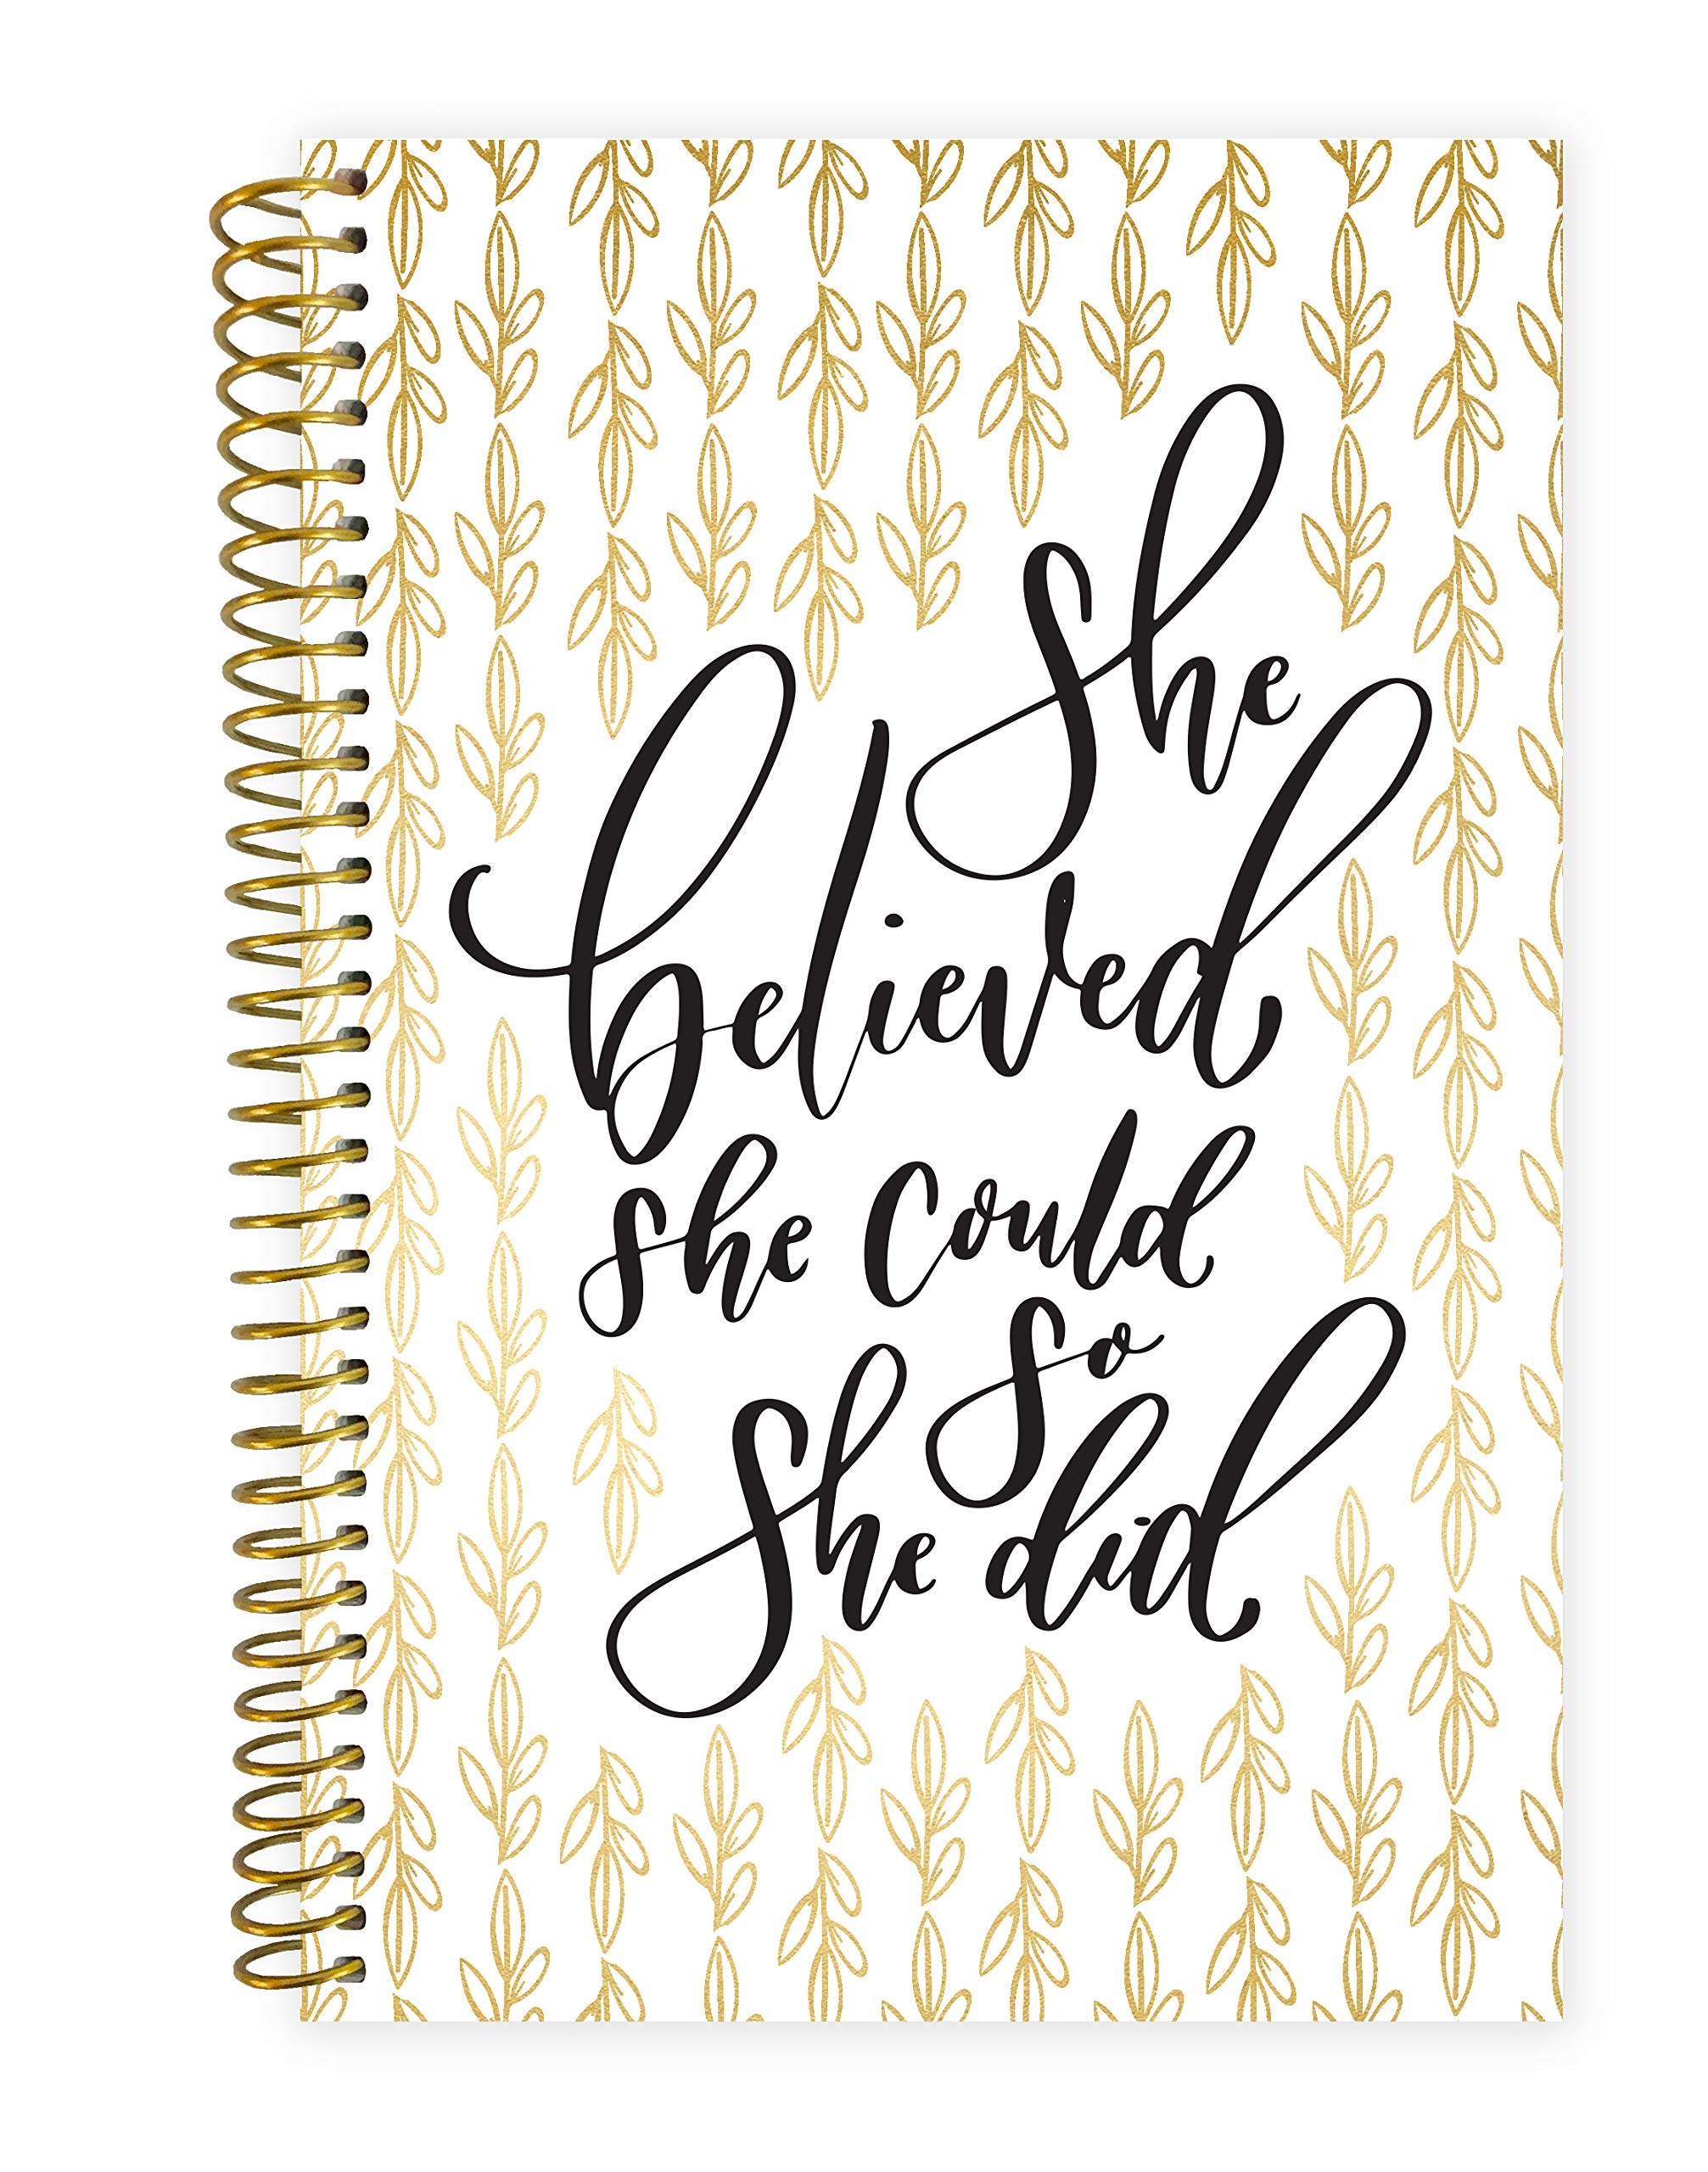 Bloom Daily Planners 2019 Calendar Year Day Planner - Passion/Goal Organizer - Monthly and Weekly Dated Agenda Book - (January 2019 - December 2019) - 6'' x 8.25'' - Writefully His